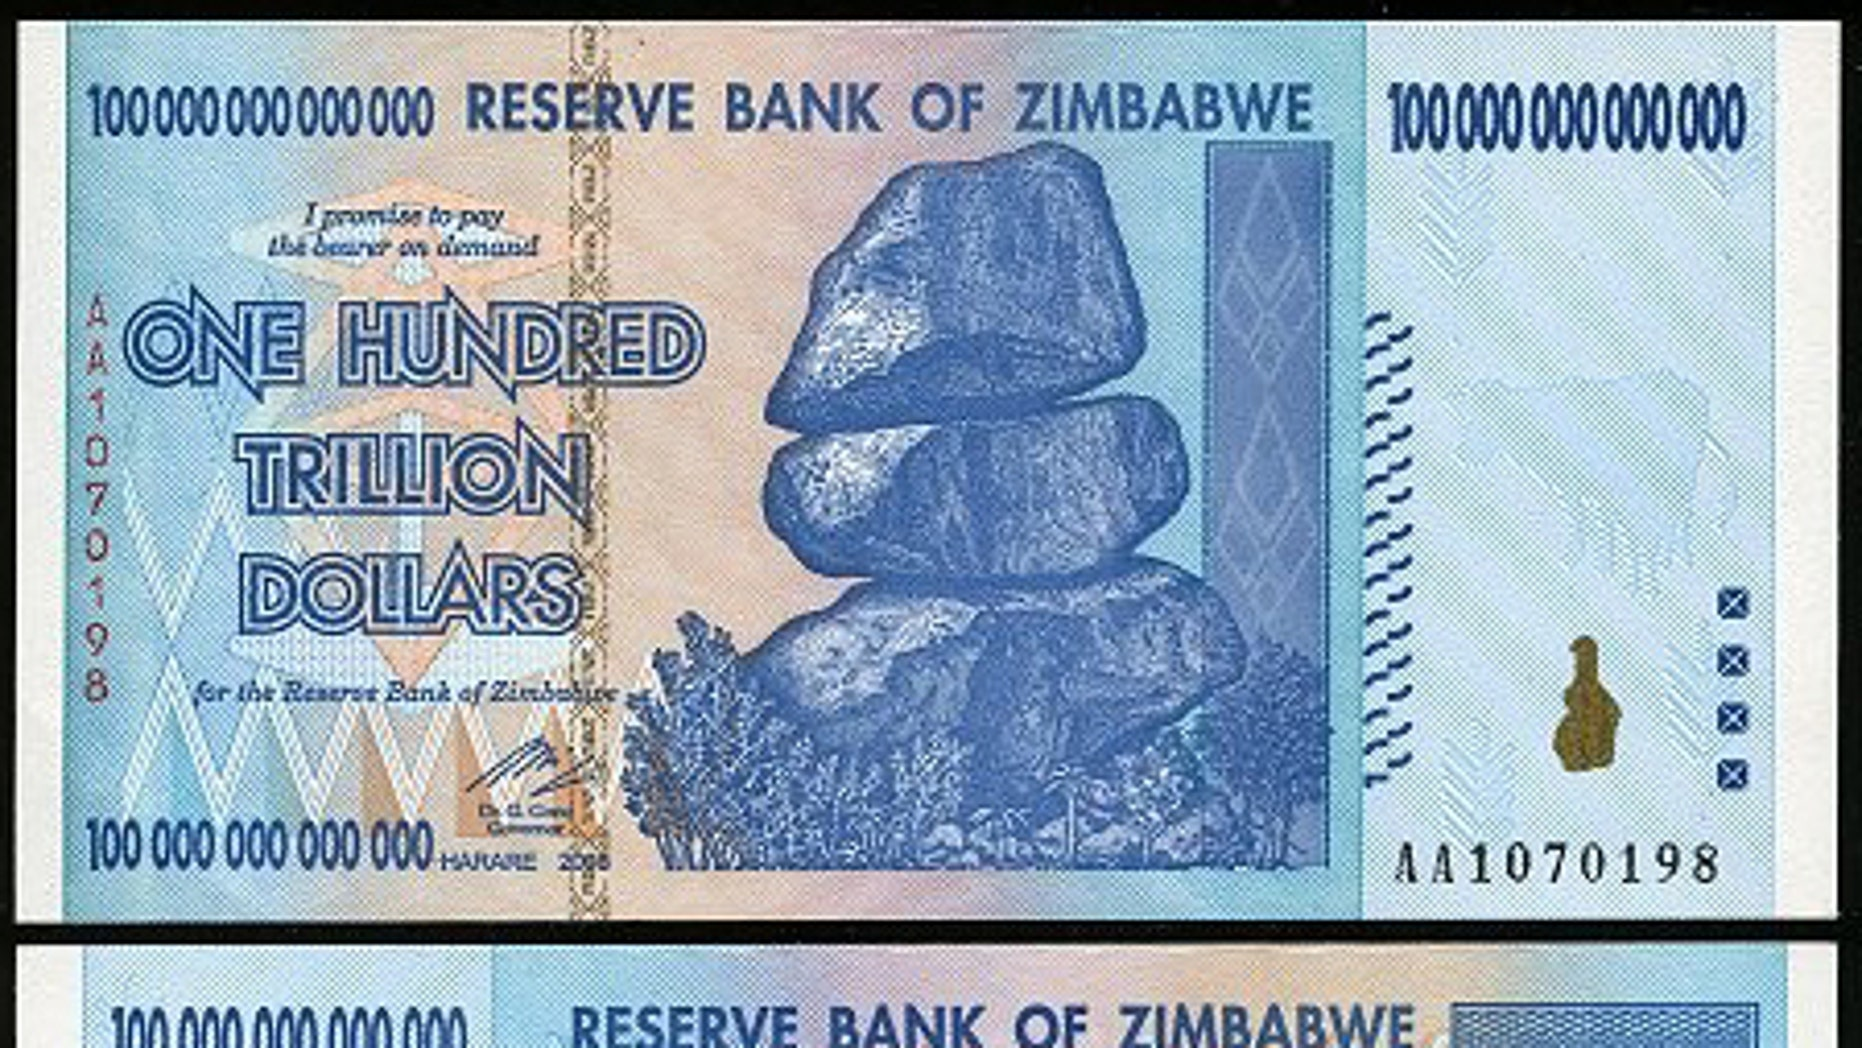 Some Zimbabweans will be able to exchange $35 quadrillion local dollars for just one U.S. dollar as the country phases out its old currency. The country's central bank says it needs to complete the implementation of a multi-currency system introduced during a period of hyper-inflation that stalled its economy.